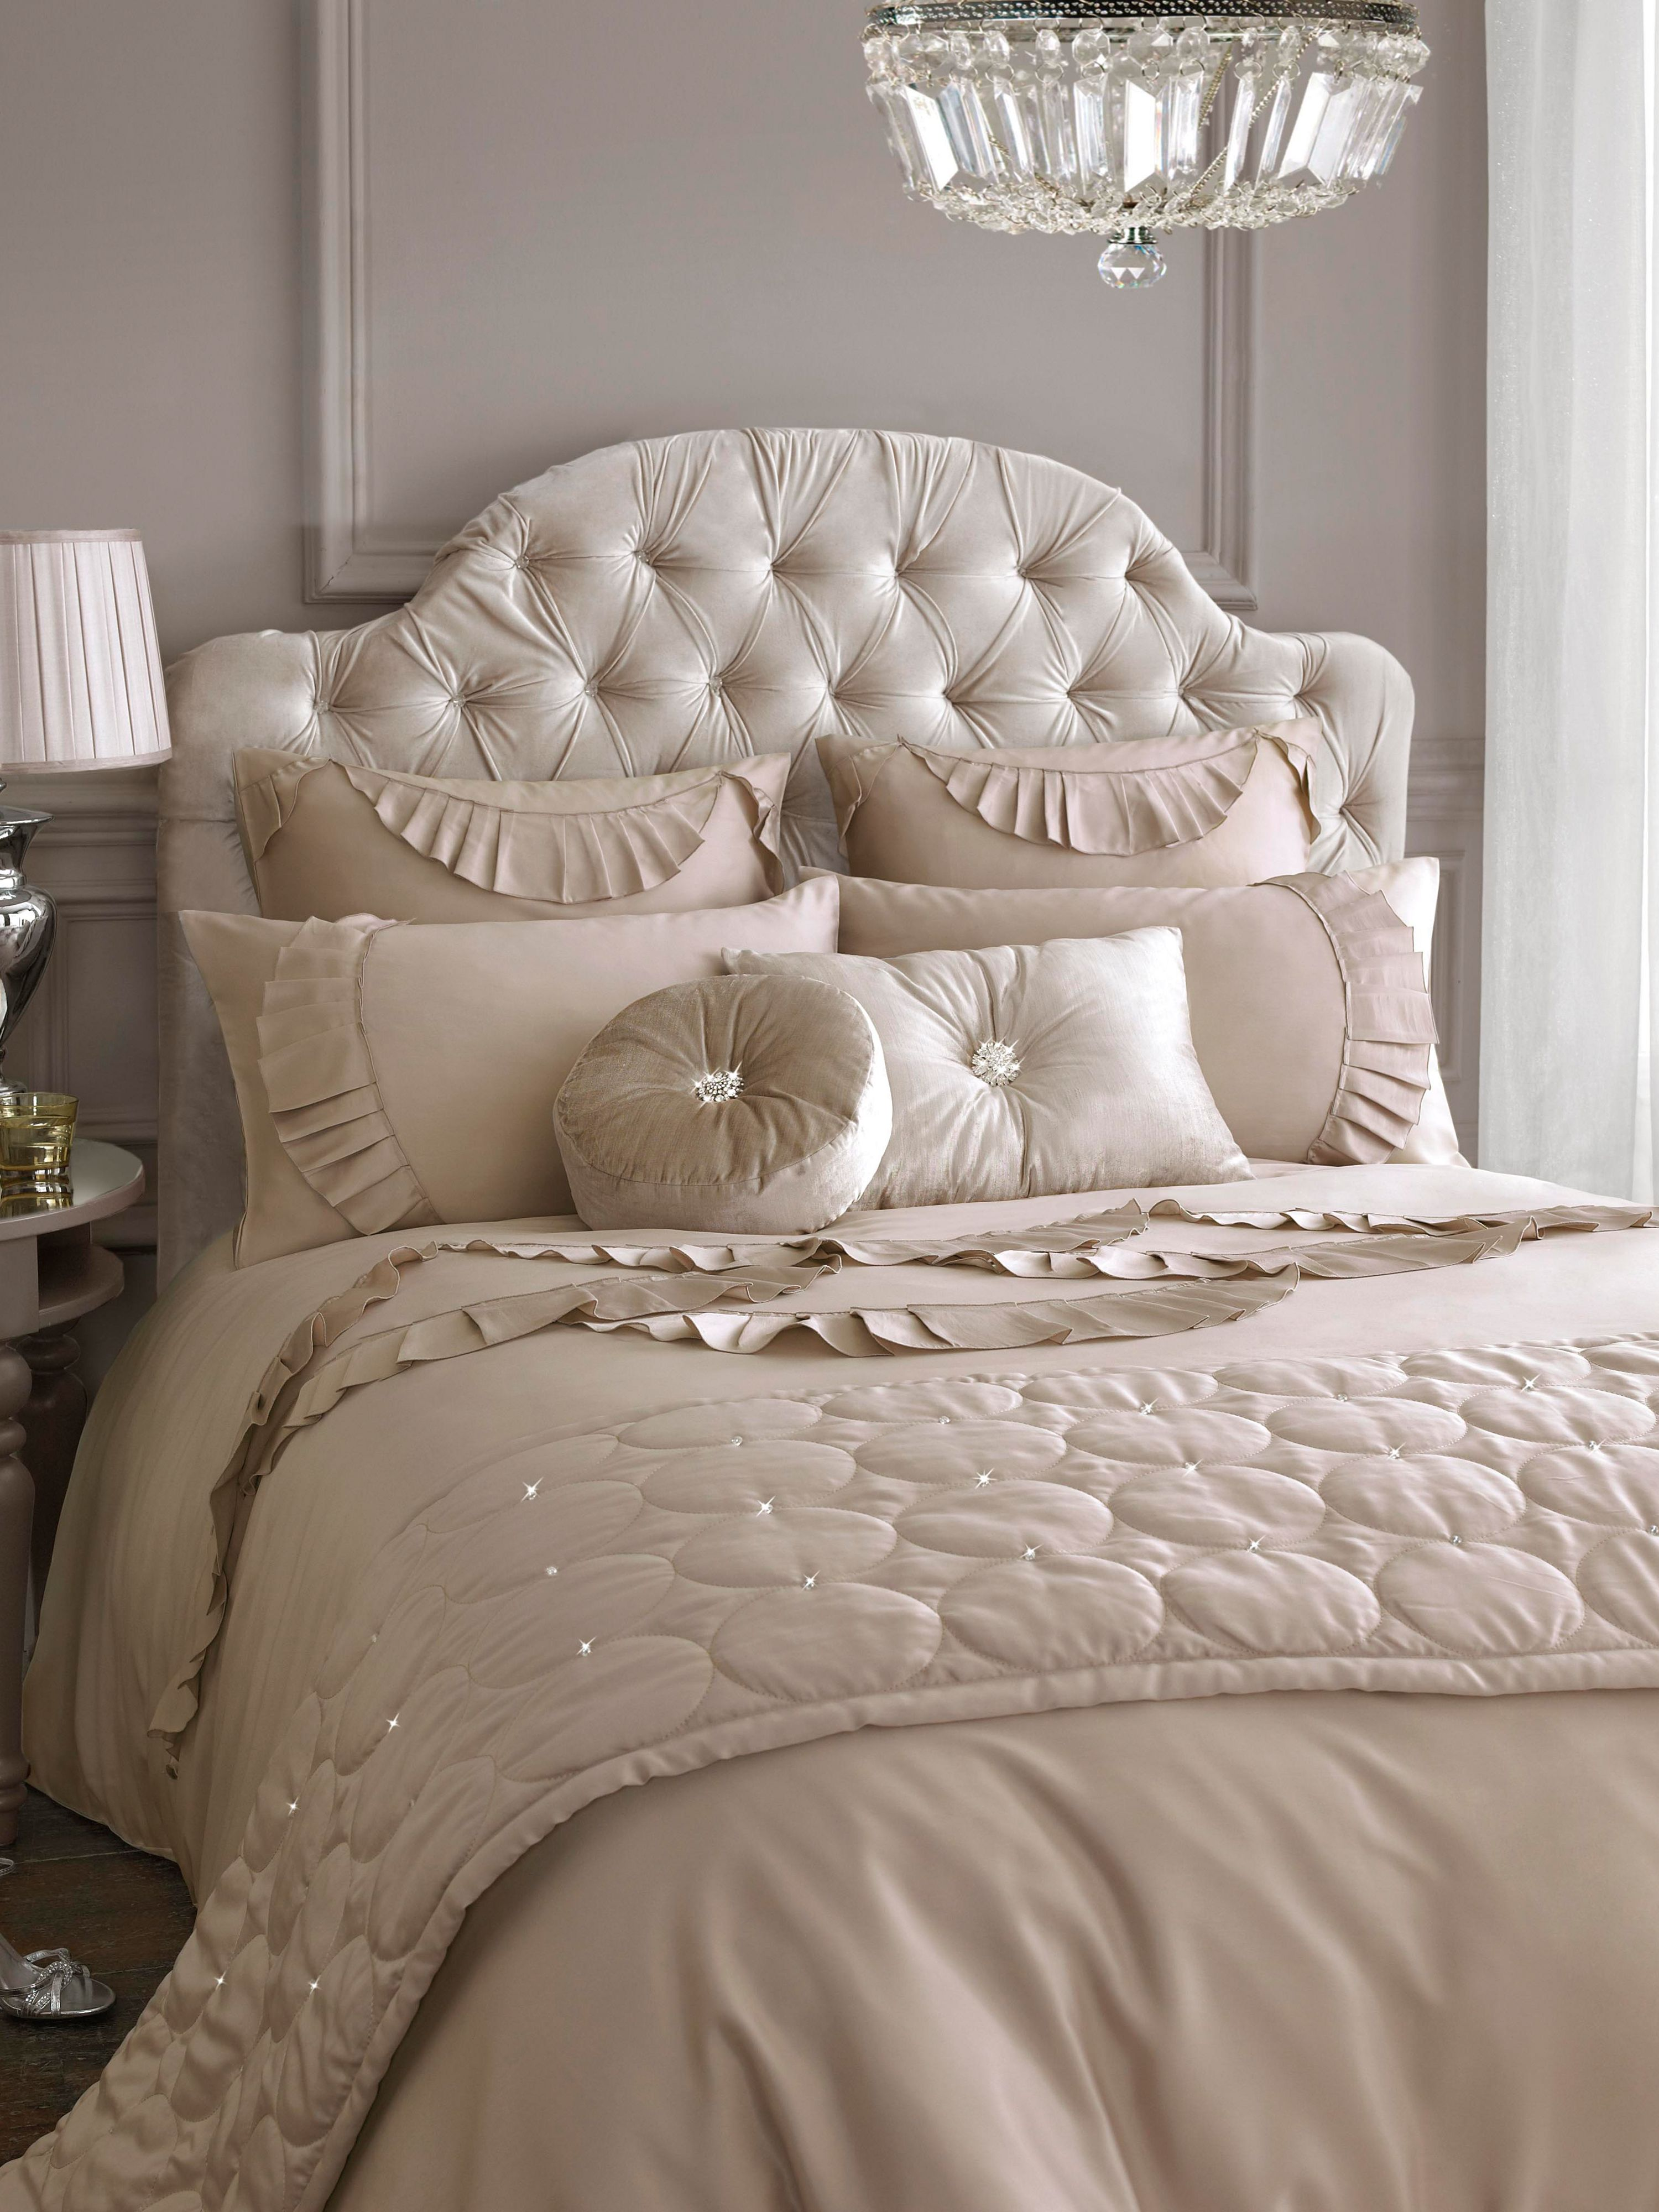 Evangeline superking duvet cover in beige